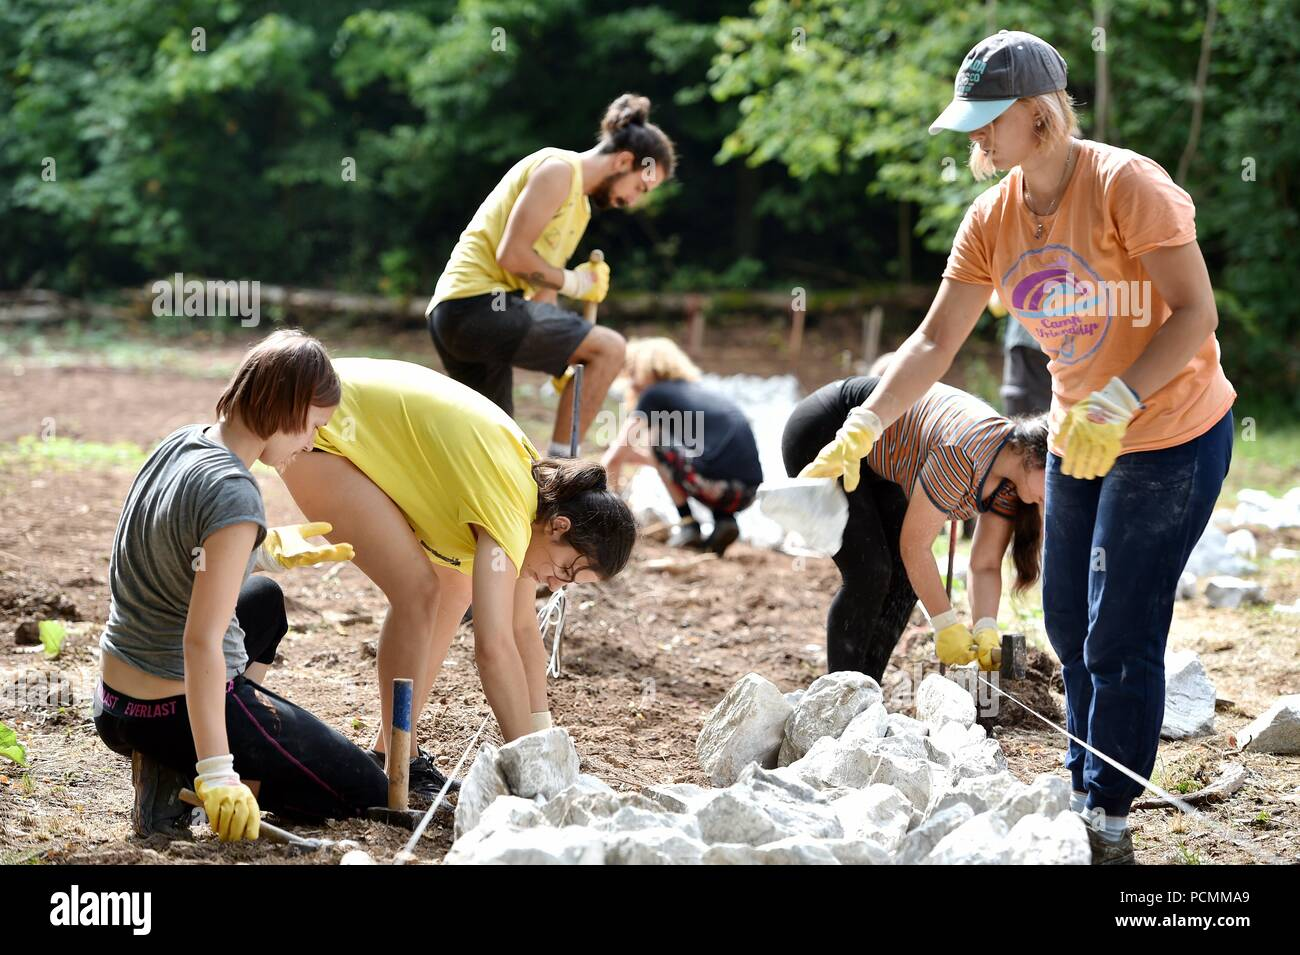 Nordhausen, Germany. 02nd Aug, 2018. An international youth group works in the Mittelbau-Dora concentration camp memorial. In the former Nazi concentration camp, young people from eight countries uncover the foundations of a prisoners' barrack. Credit: Frank May/dpa/Alamy Live News - Stock Image